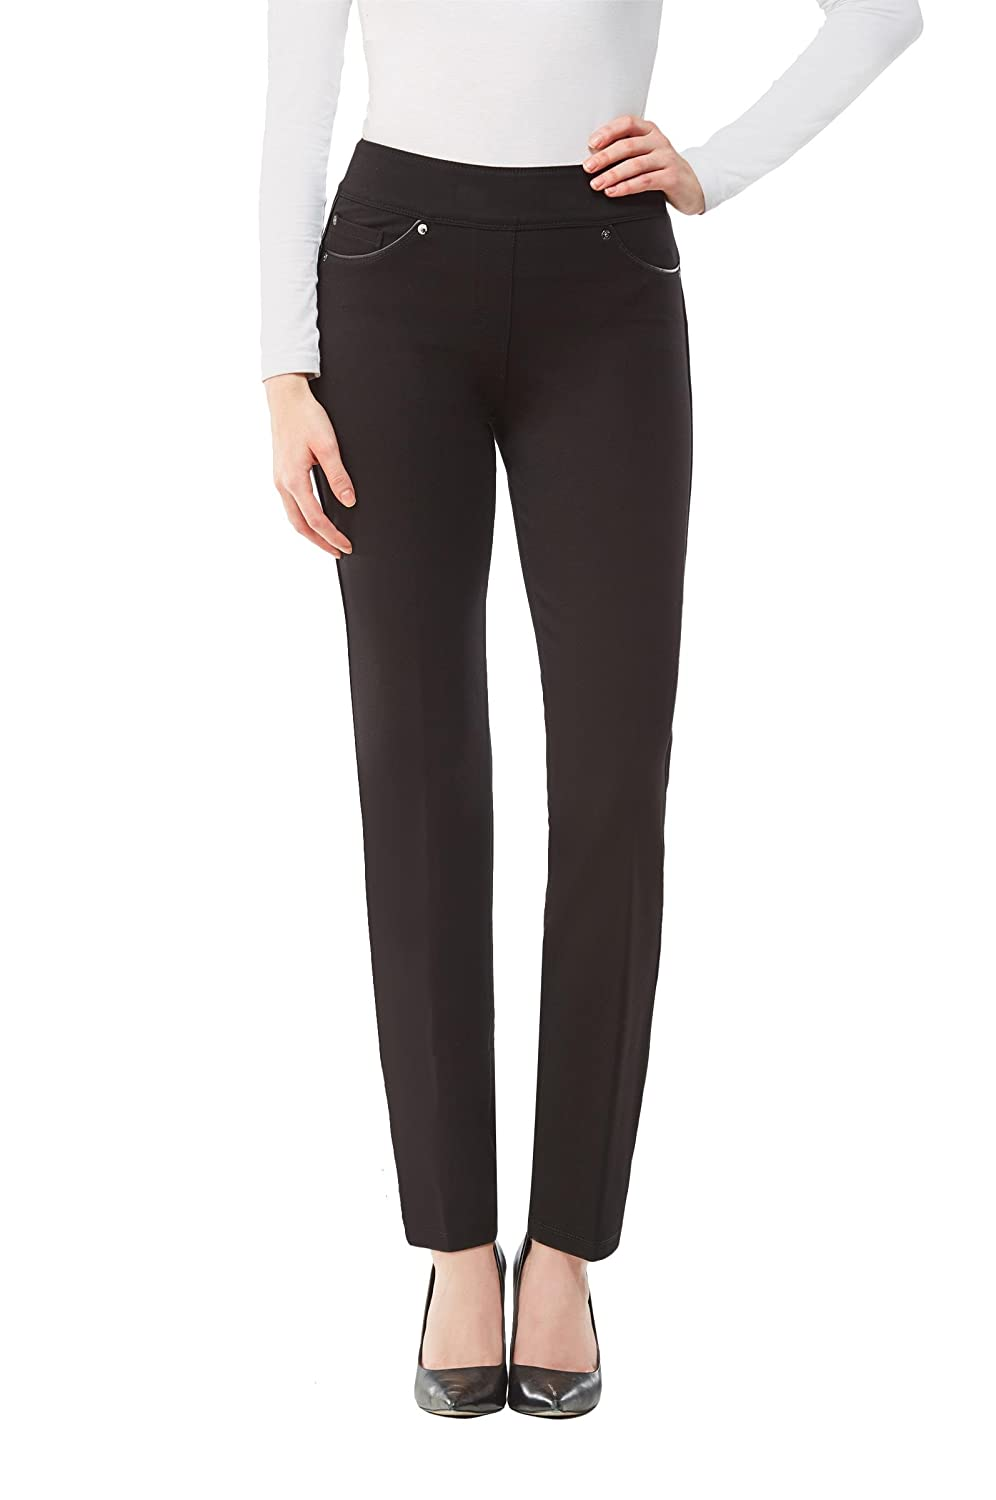 Plus Luxe C4J Piped Skinny Pant Black 2X